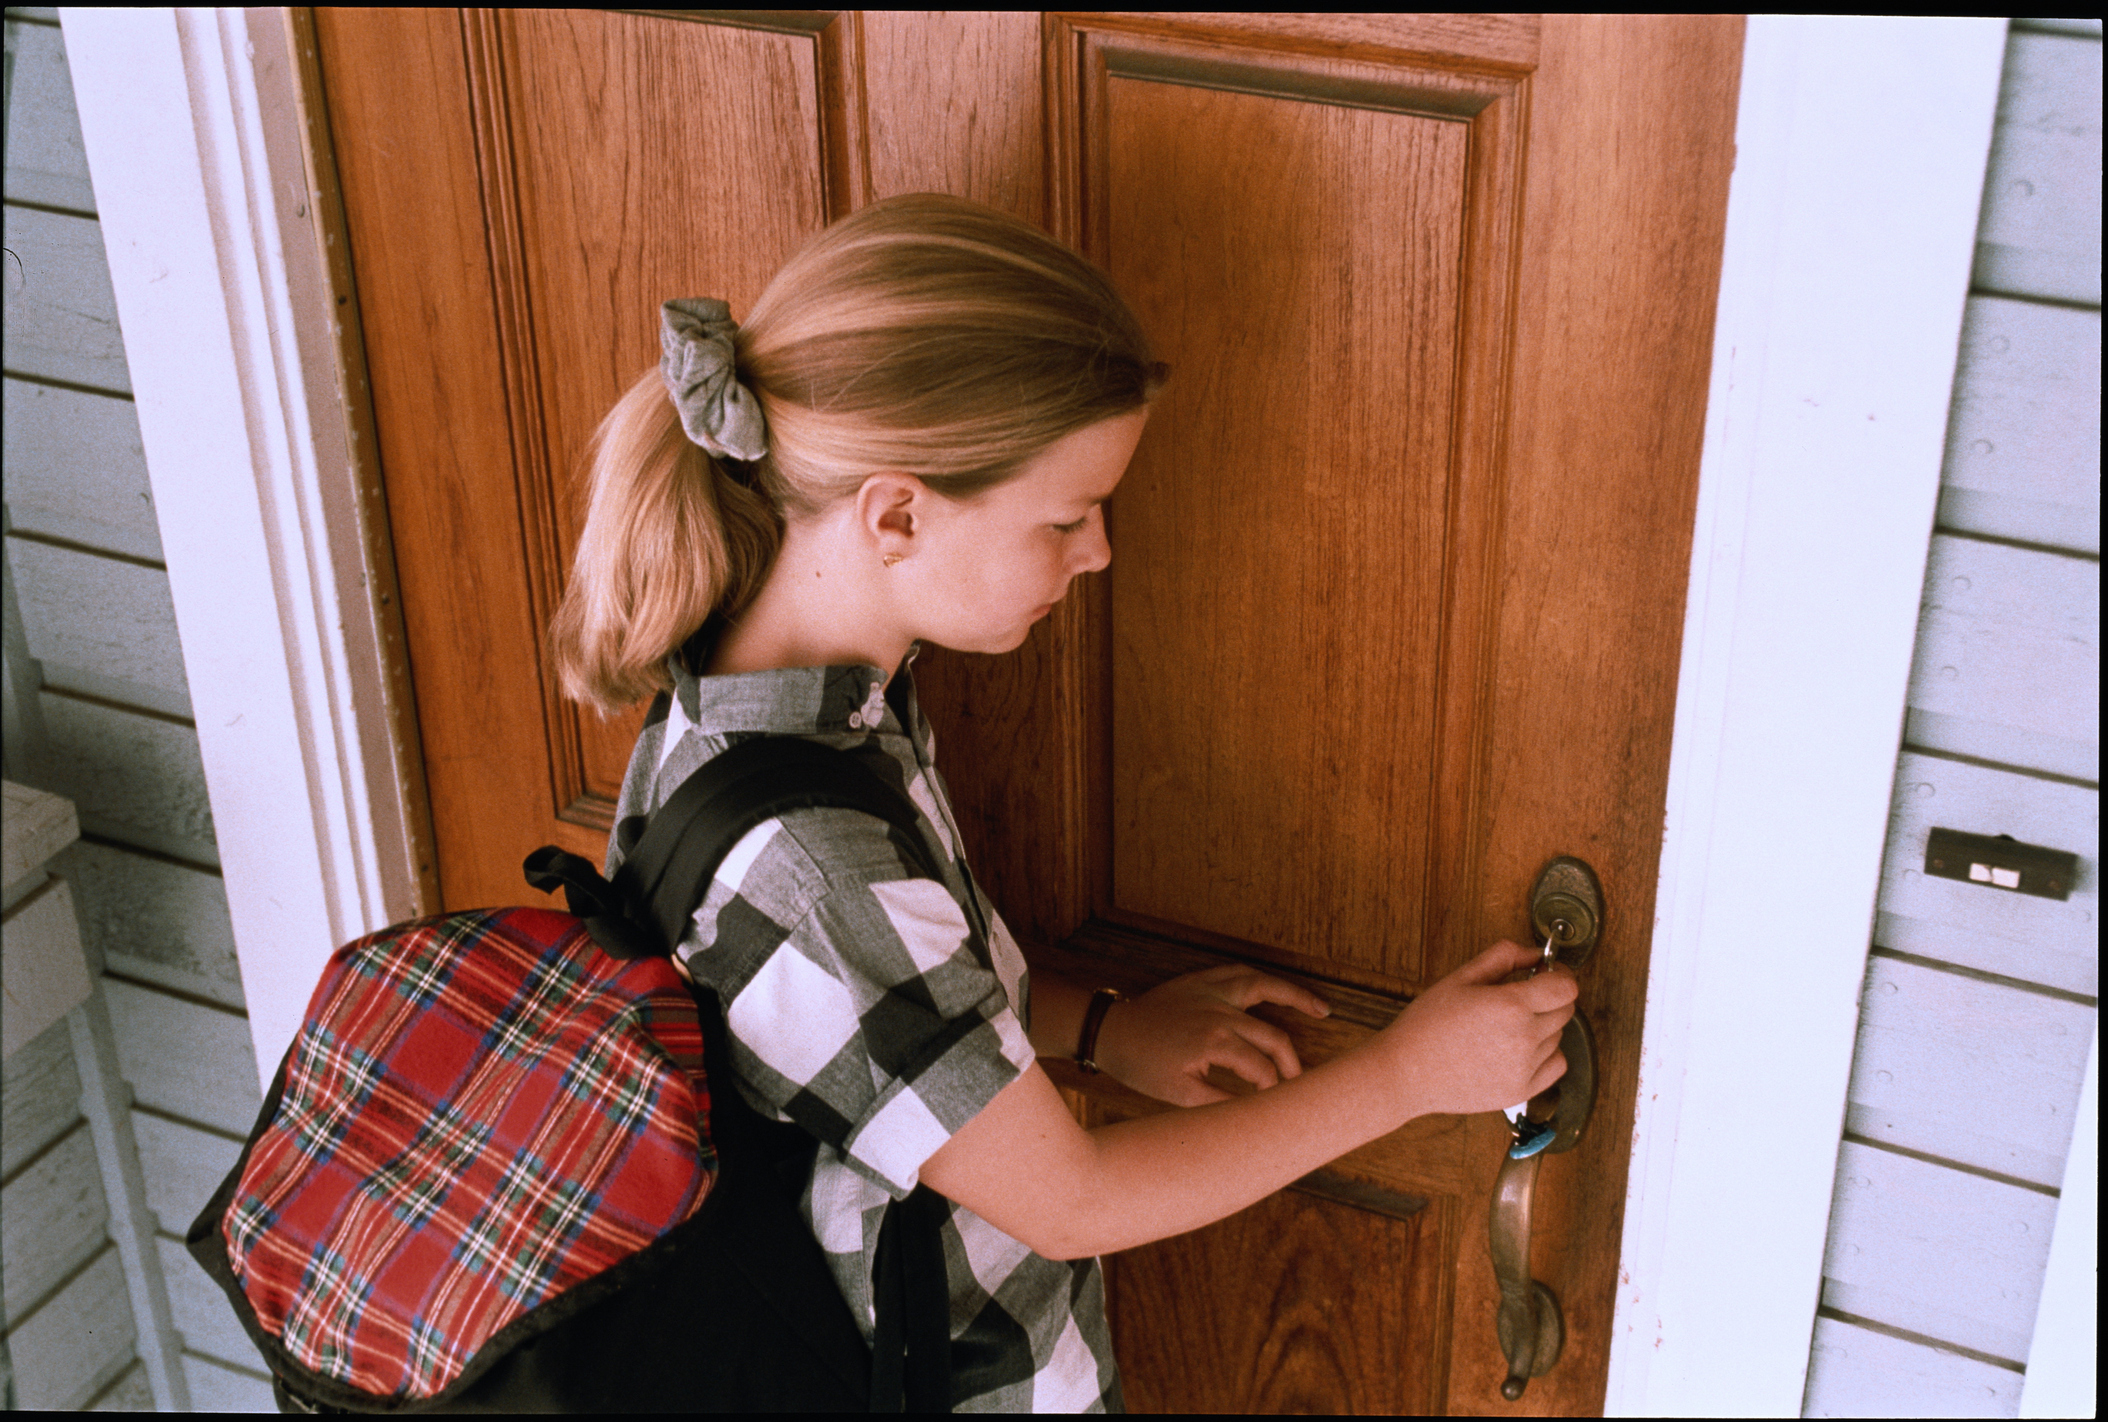 'Latchkey Kids': What's Different About Leaving Children Home Alone Now Versus Then